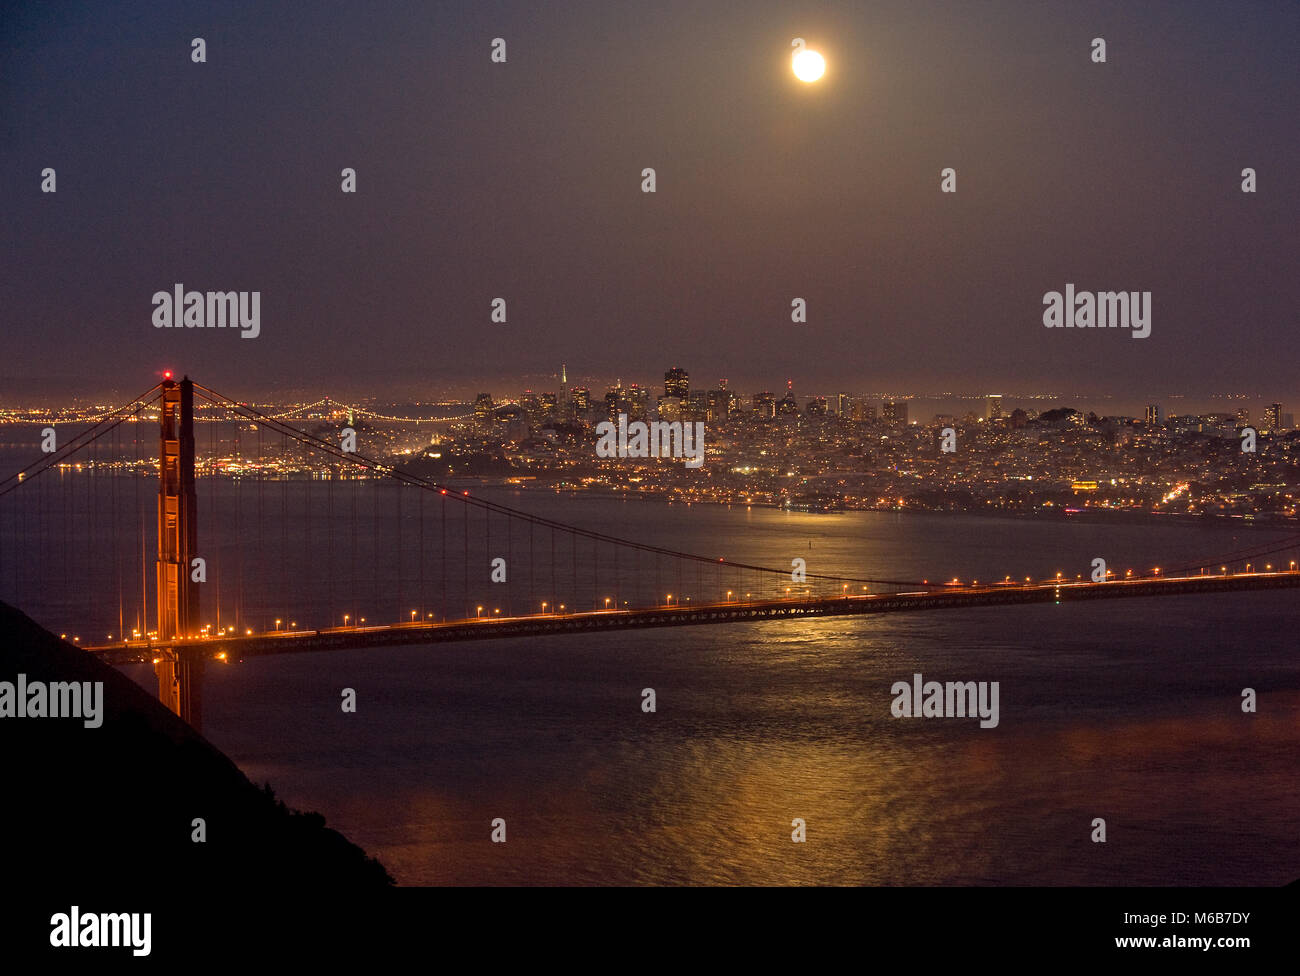 Moonrise, Golden Gate Bridge, San Francisco, California - Stock Image